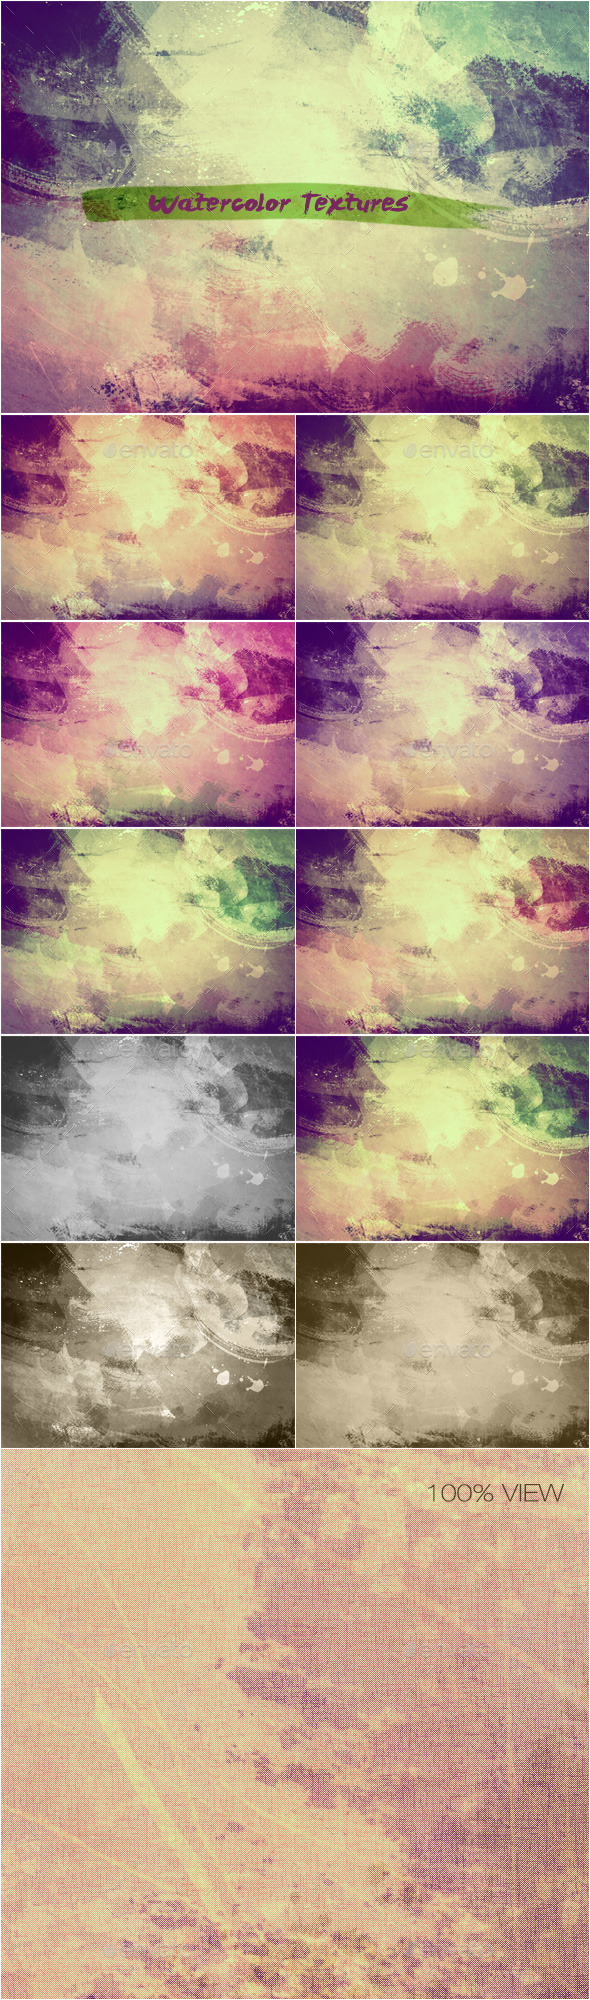 GraphicRiver Watercolor Textures Set 6 11447216